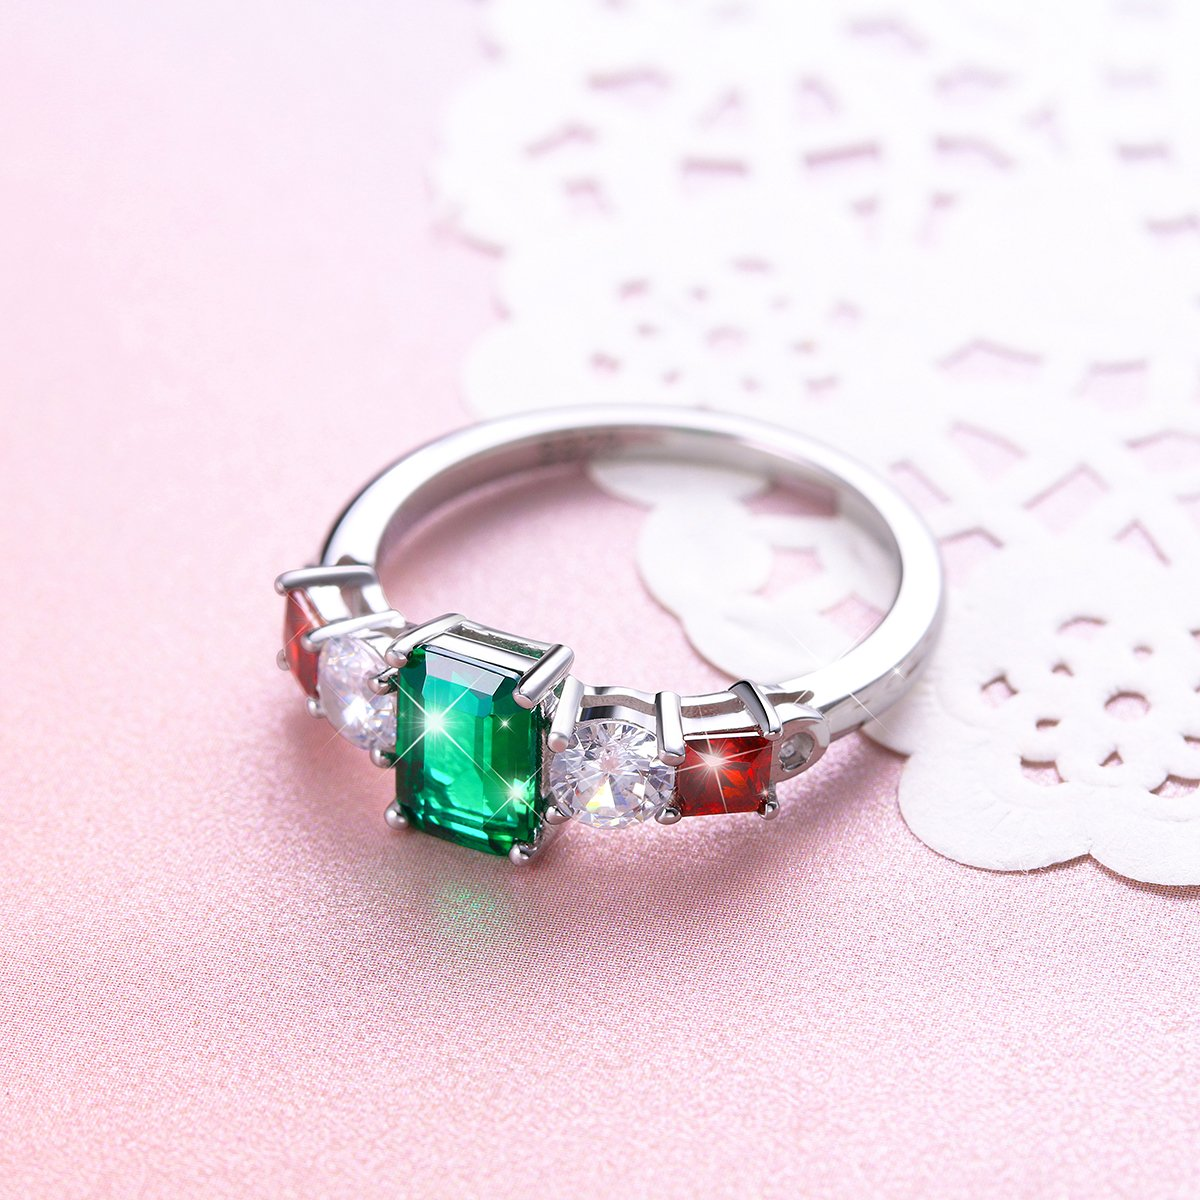 Vintage Elegant Jewelry 925 Sterling Silver Green and Red Cz Ring for Mom Size 9 by SILVER MOUNTAIN (Image #2)